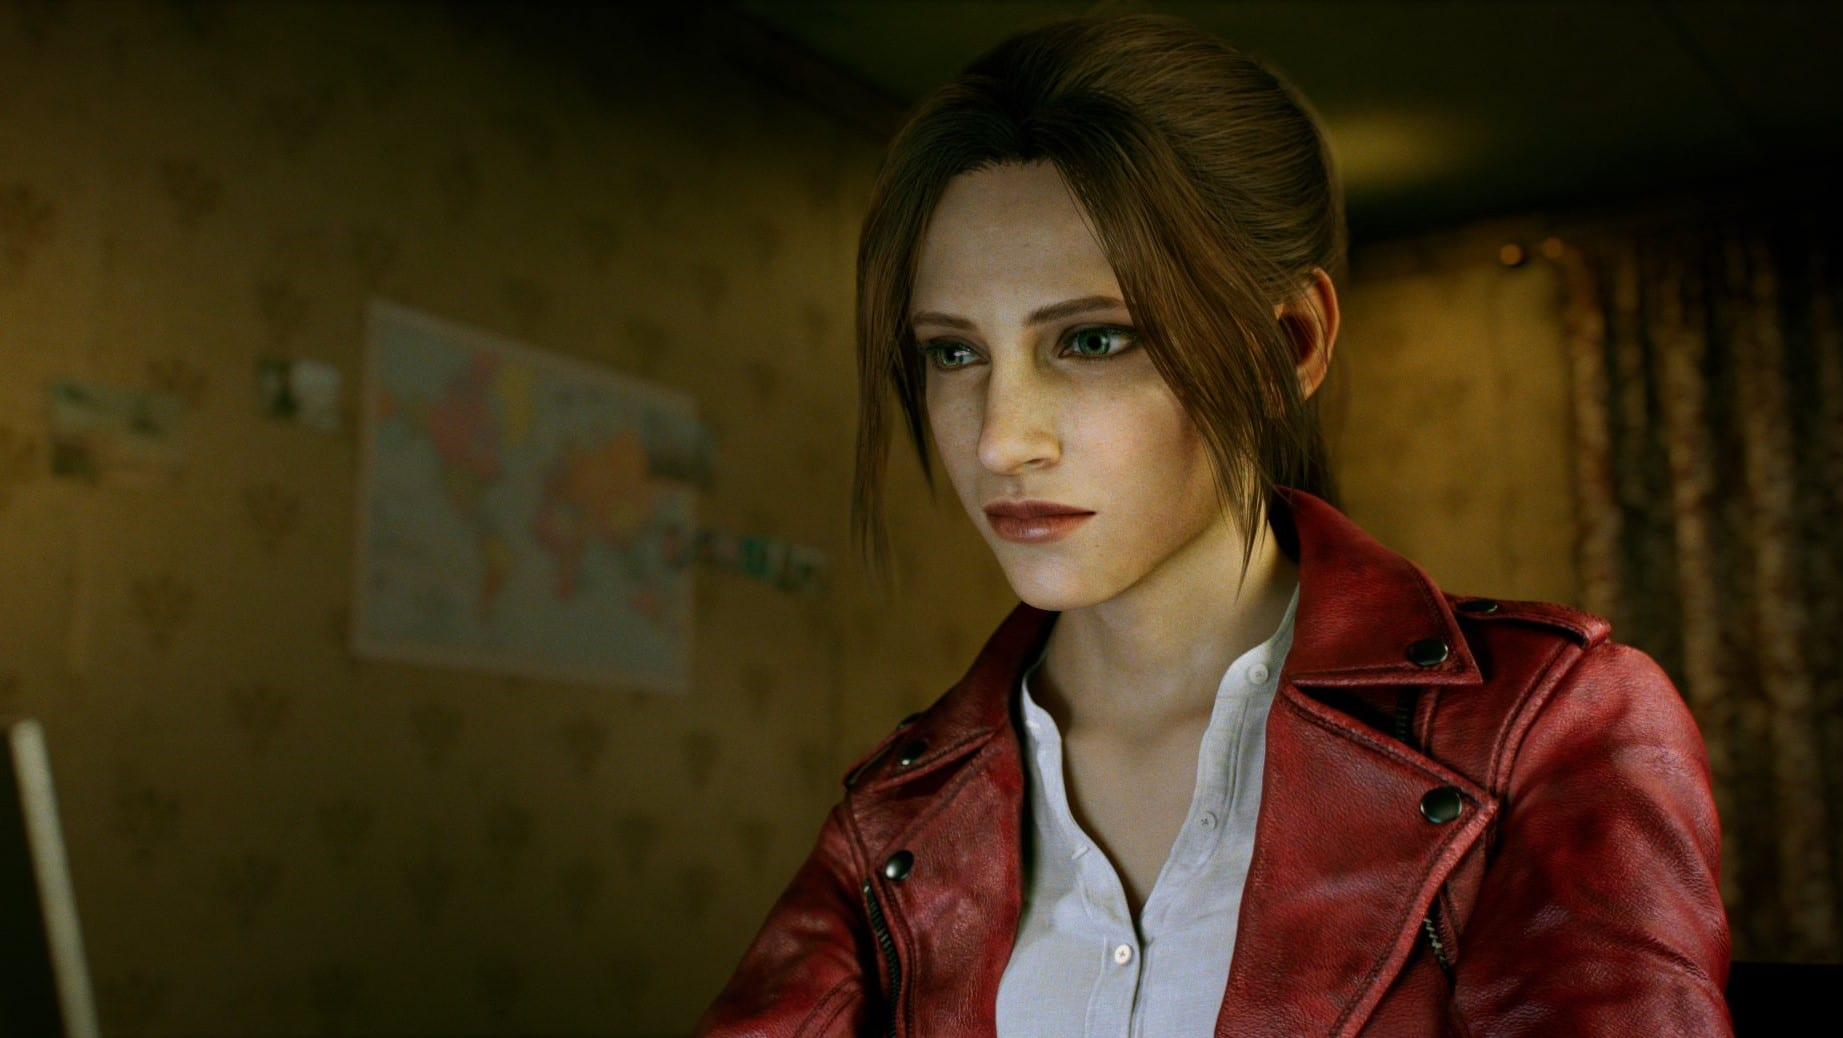 Resident Evil: Infinite Darkness Season 1 Episode 1 Release Date and Spoilers